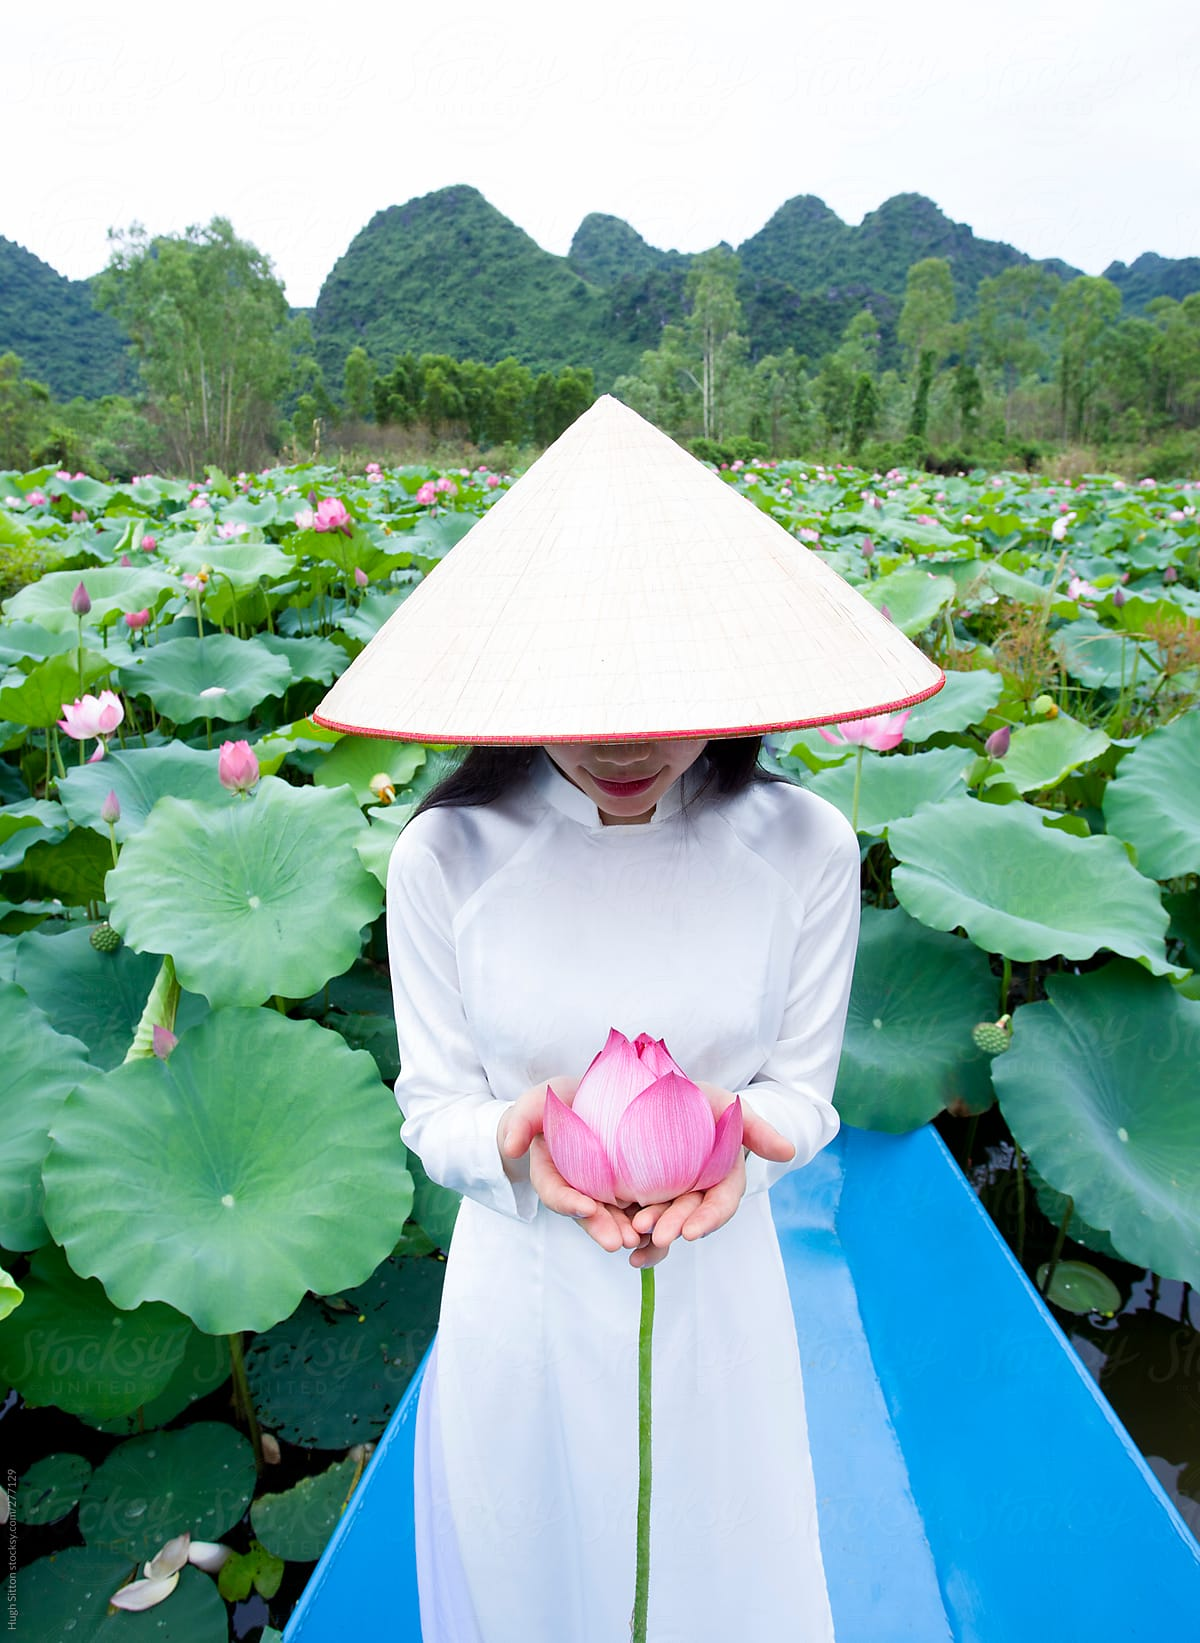 Vietnamese woman in traditional dress with lotus flowers vietnam vietnamese woman in traditional dress with lotus flowers vietnam by hugh sitton for stocksy mightylinksfo